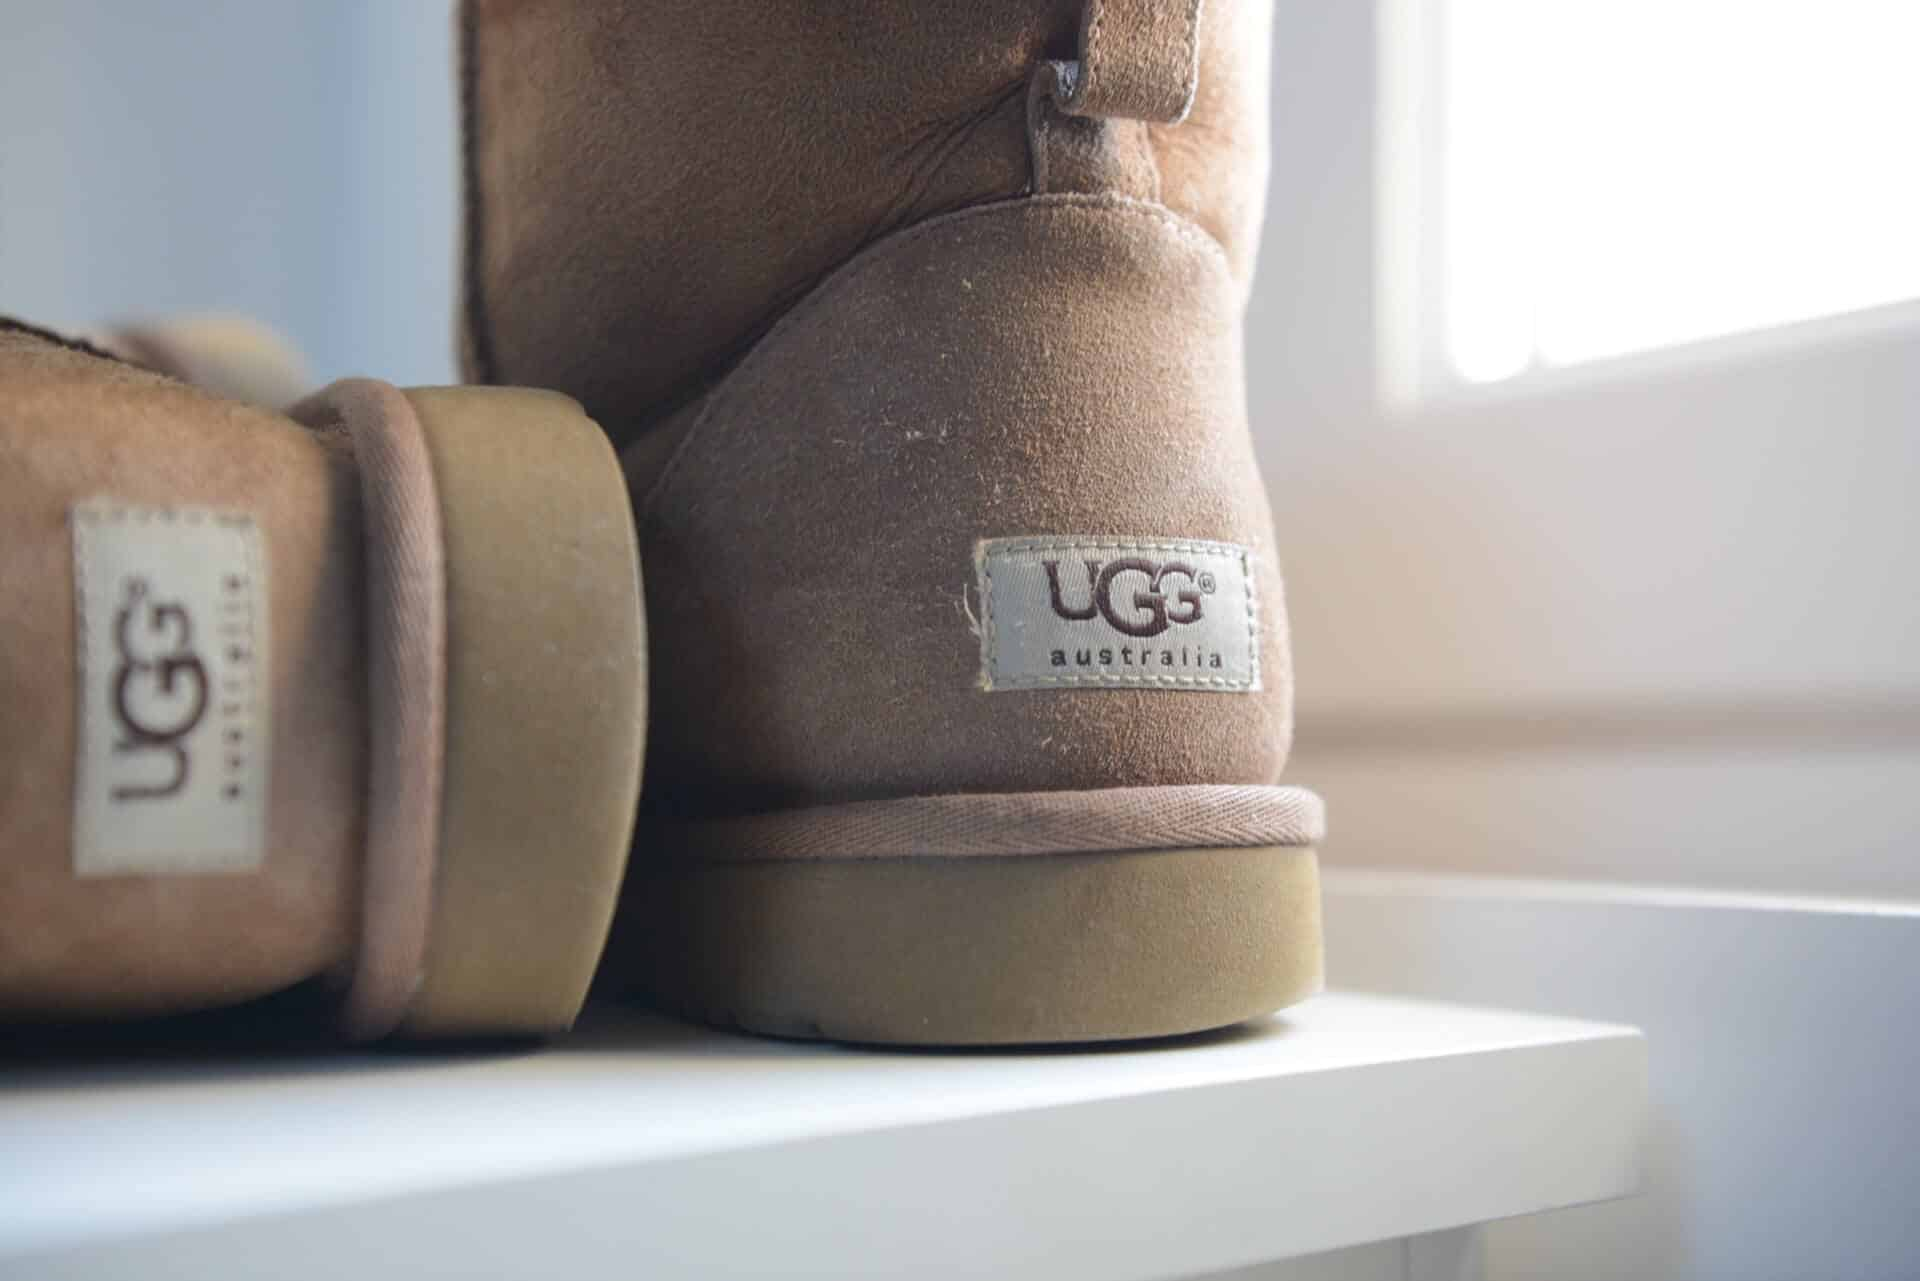 zoom-in of the uggs australia tag on a pair of boots